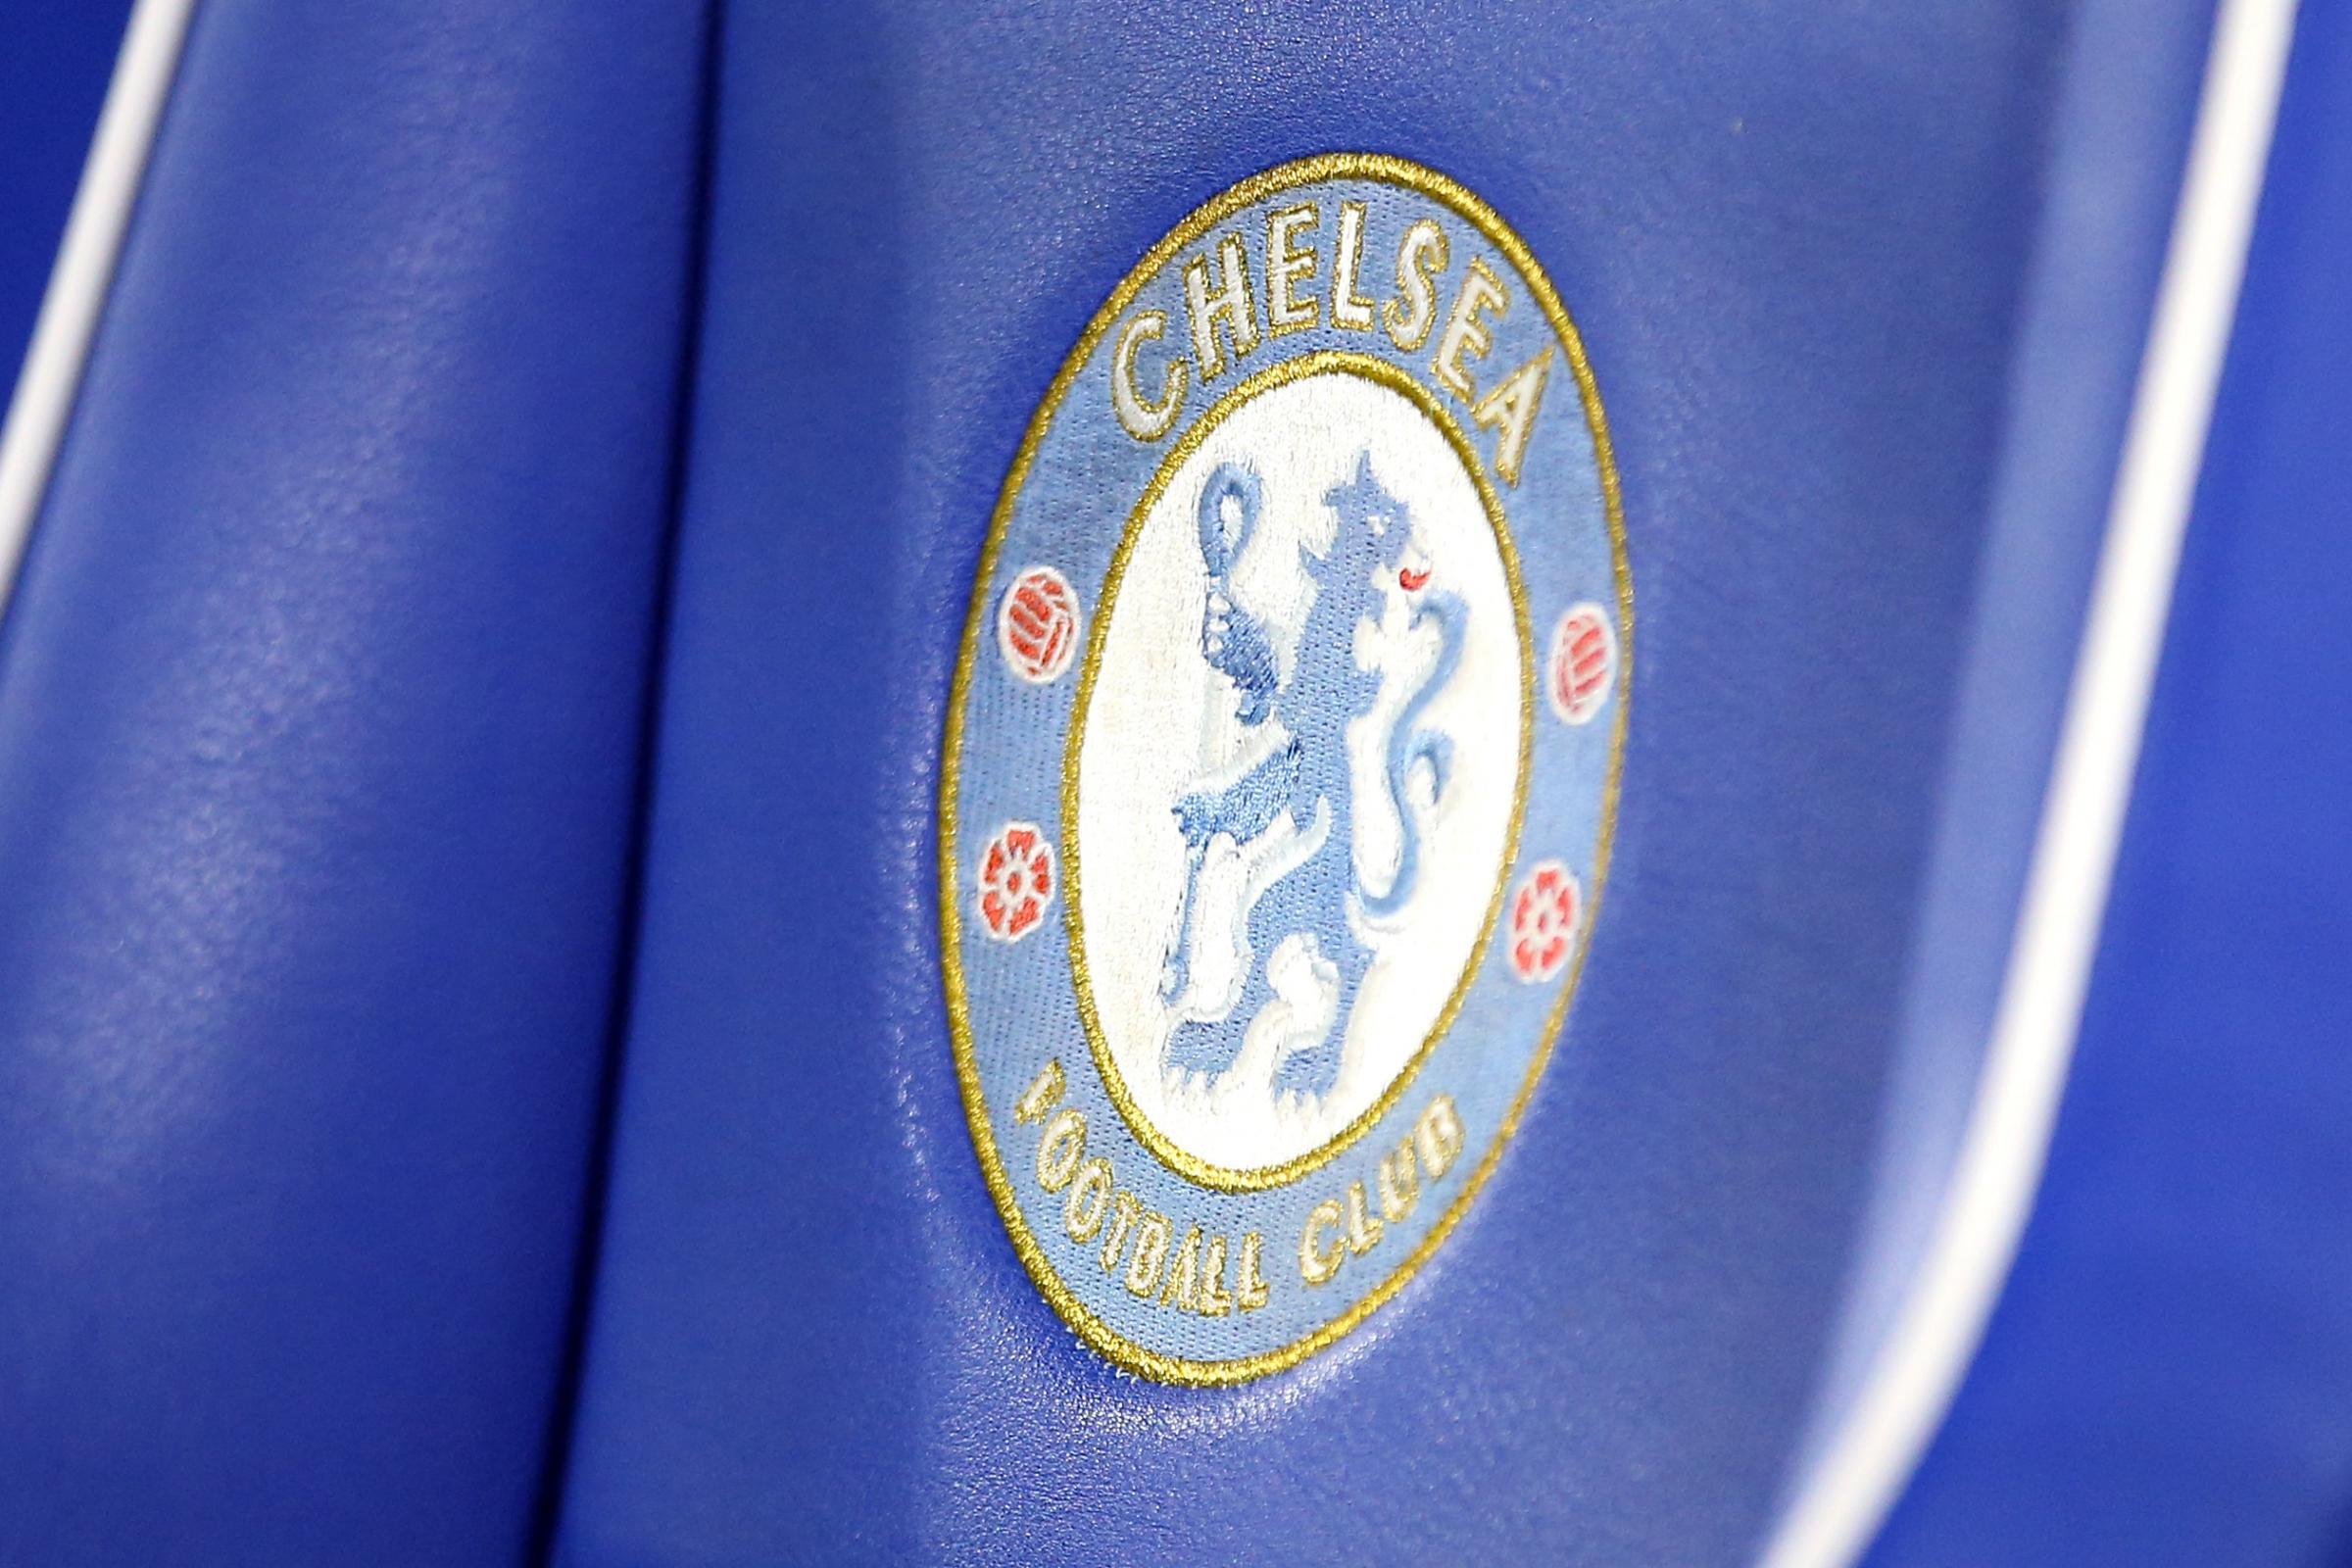 Chelsea's appeal will be heard on April 11